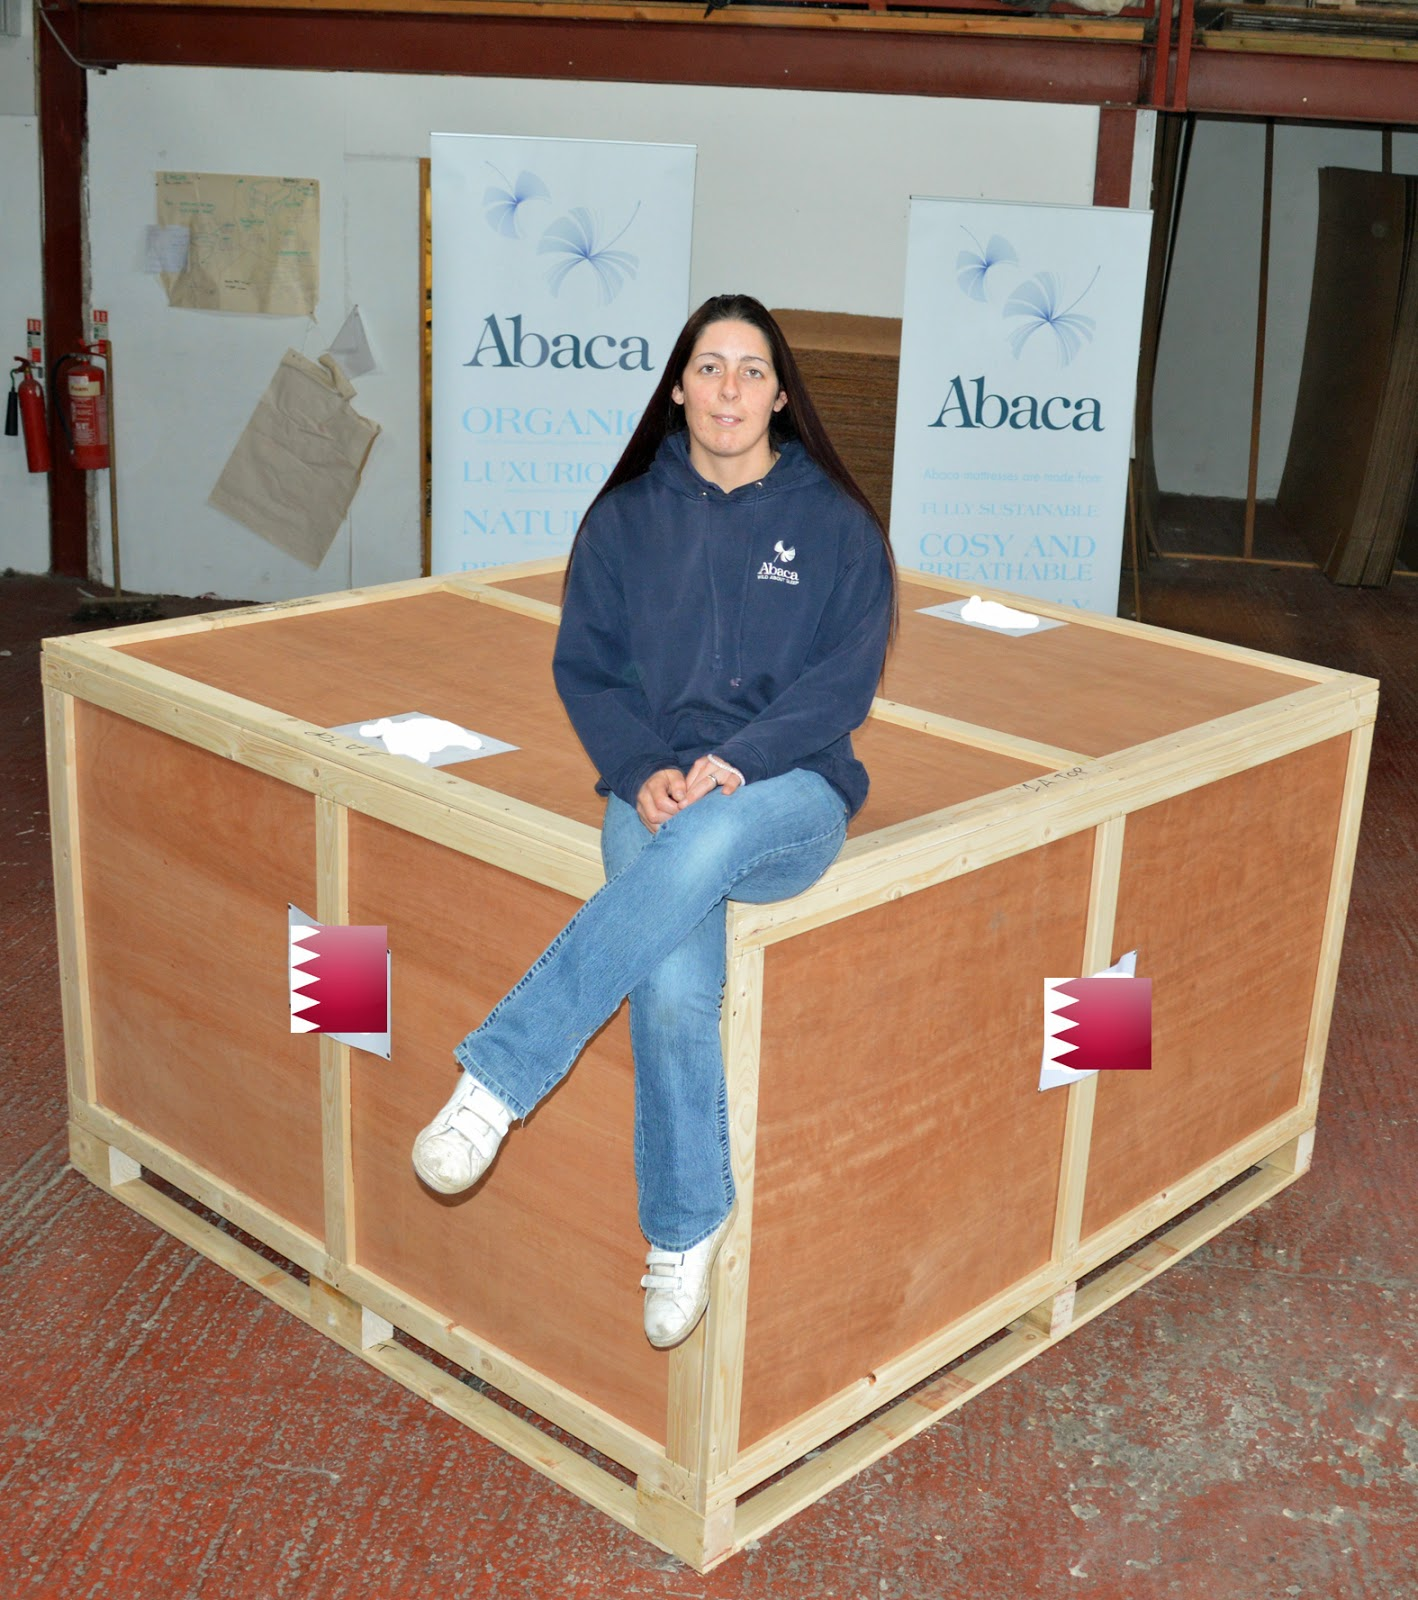 Abaca Mattress It S Another First For The Team At Abaca The Organic Mattress Experts